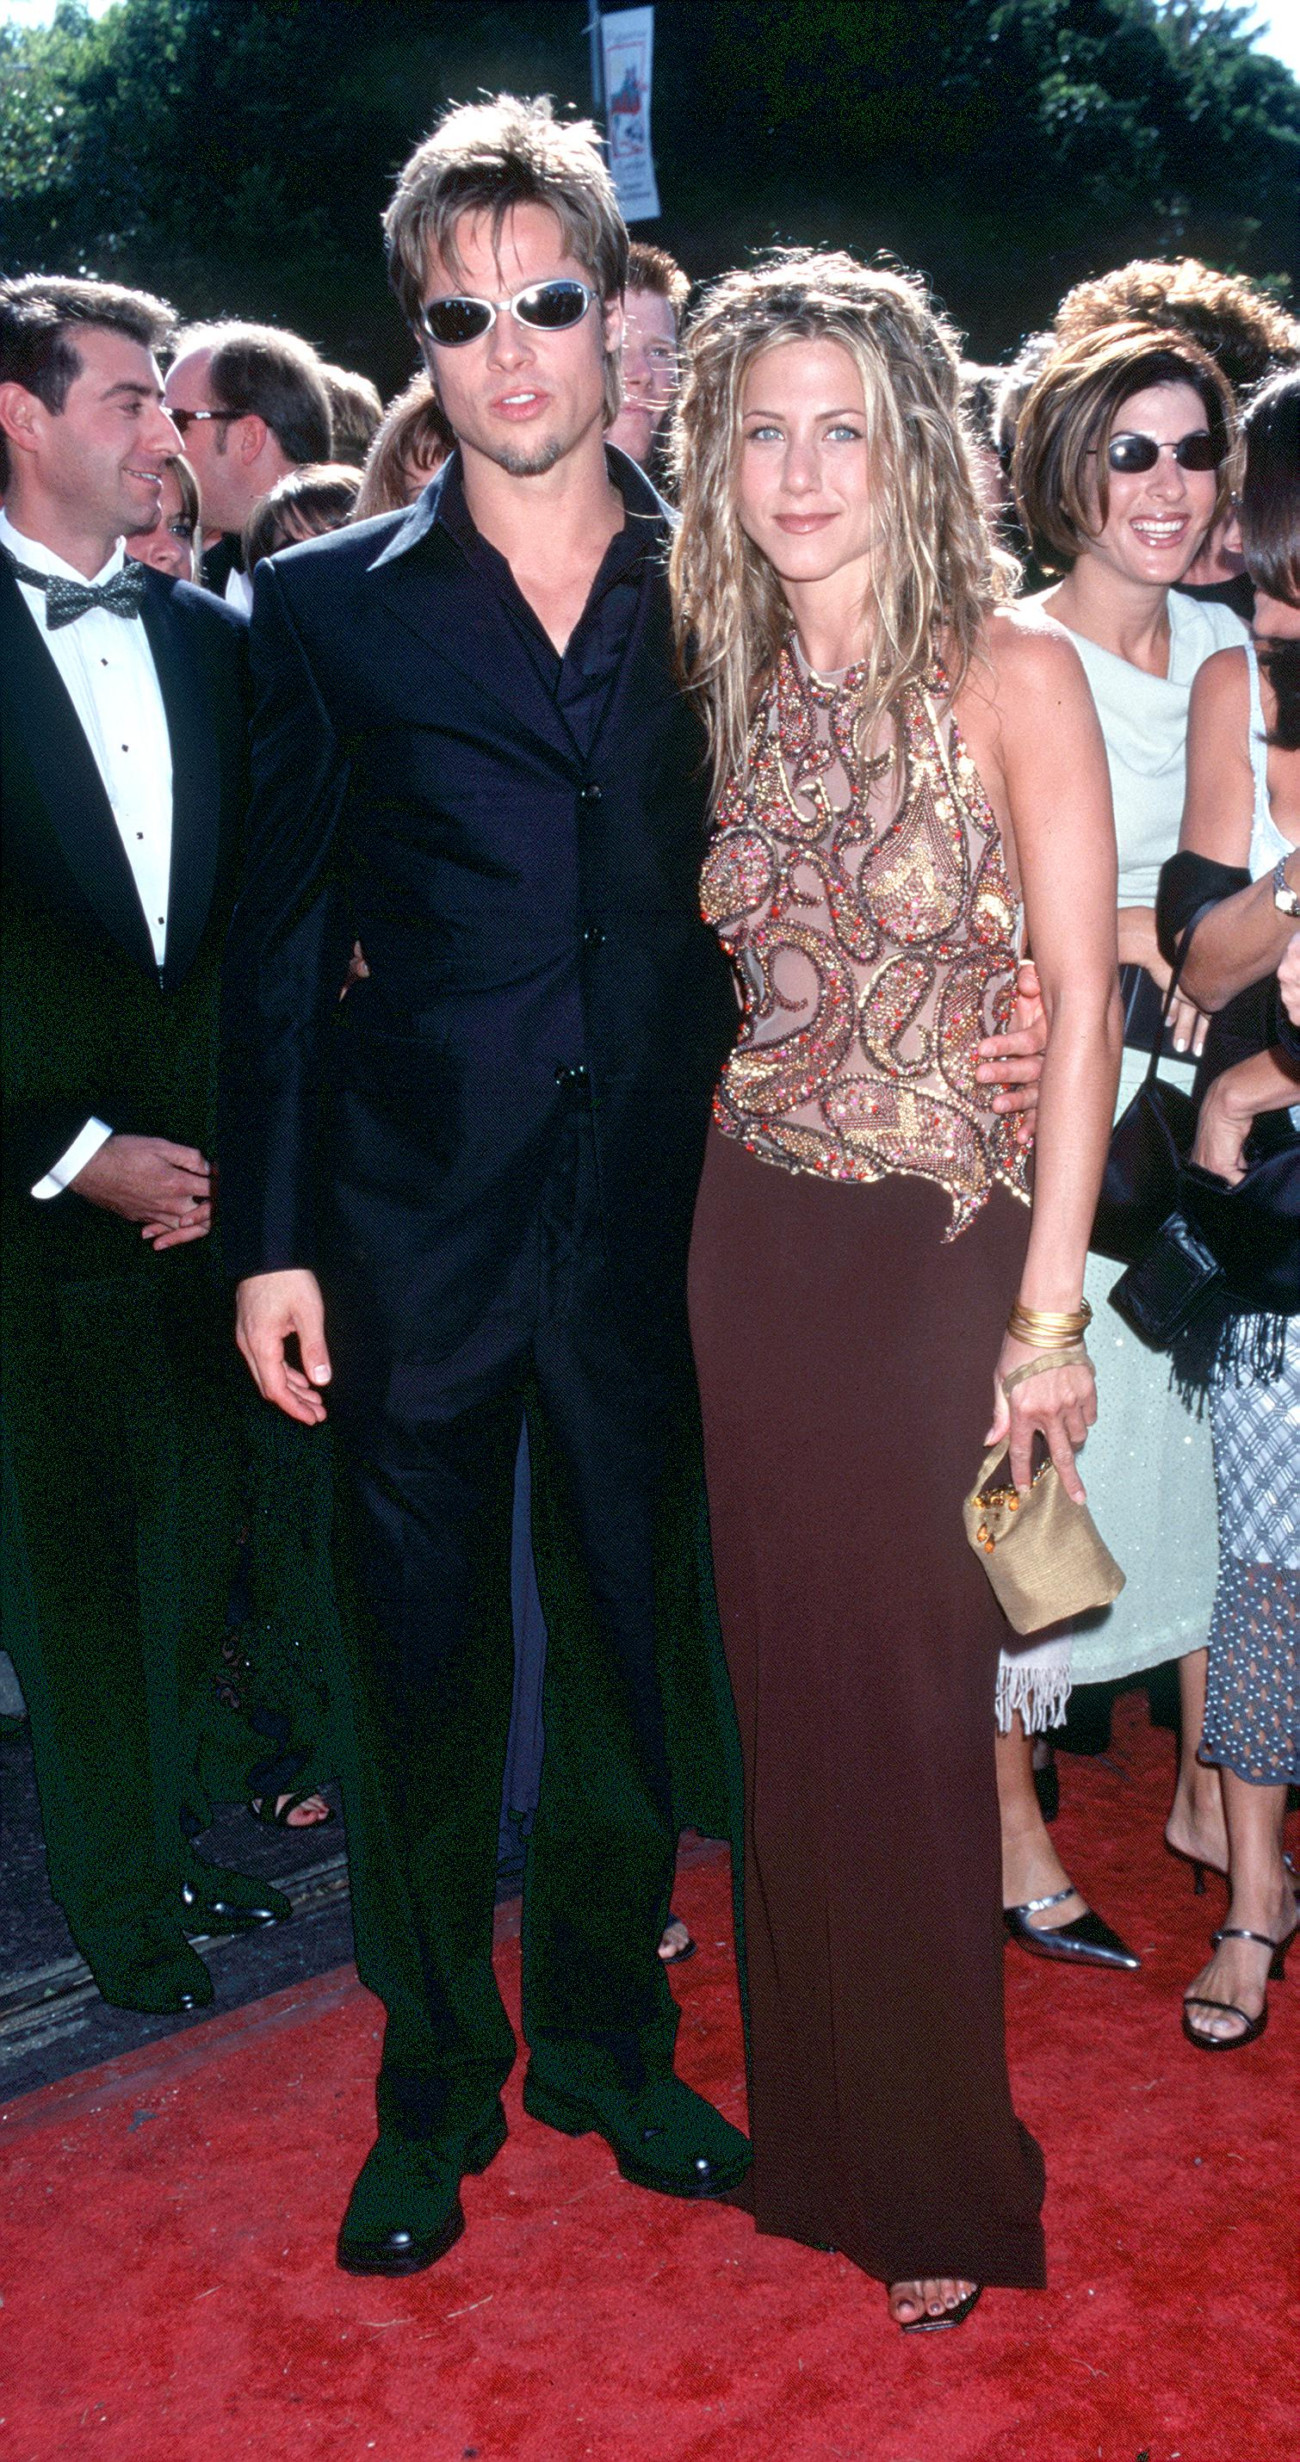 9/12/99 Los Angeles, CA. Brad Pitt and Jennifer Aniston at the 51st Annual primetime Emmy Awards . Photo by Brenda Chase/Online USA, Inc.